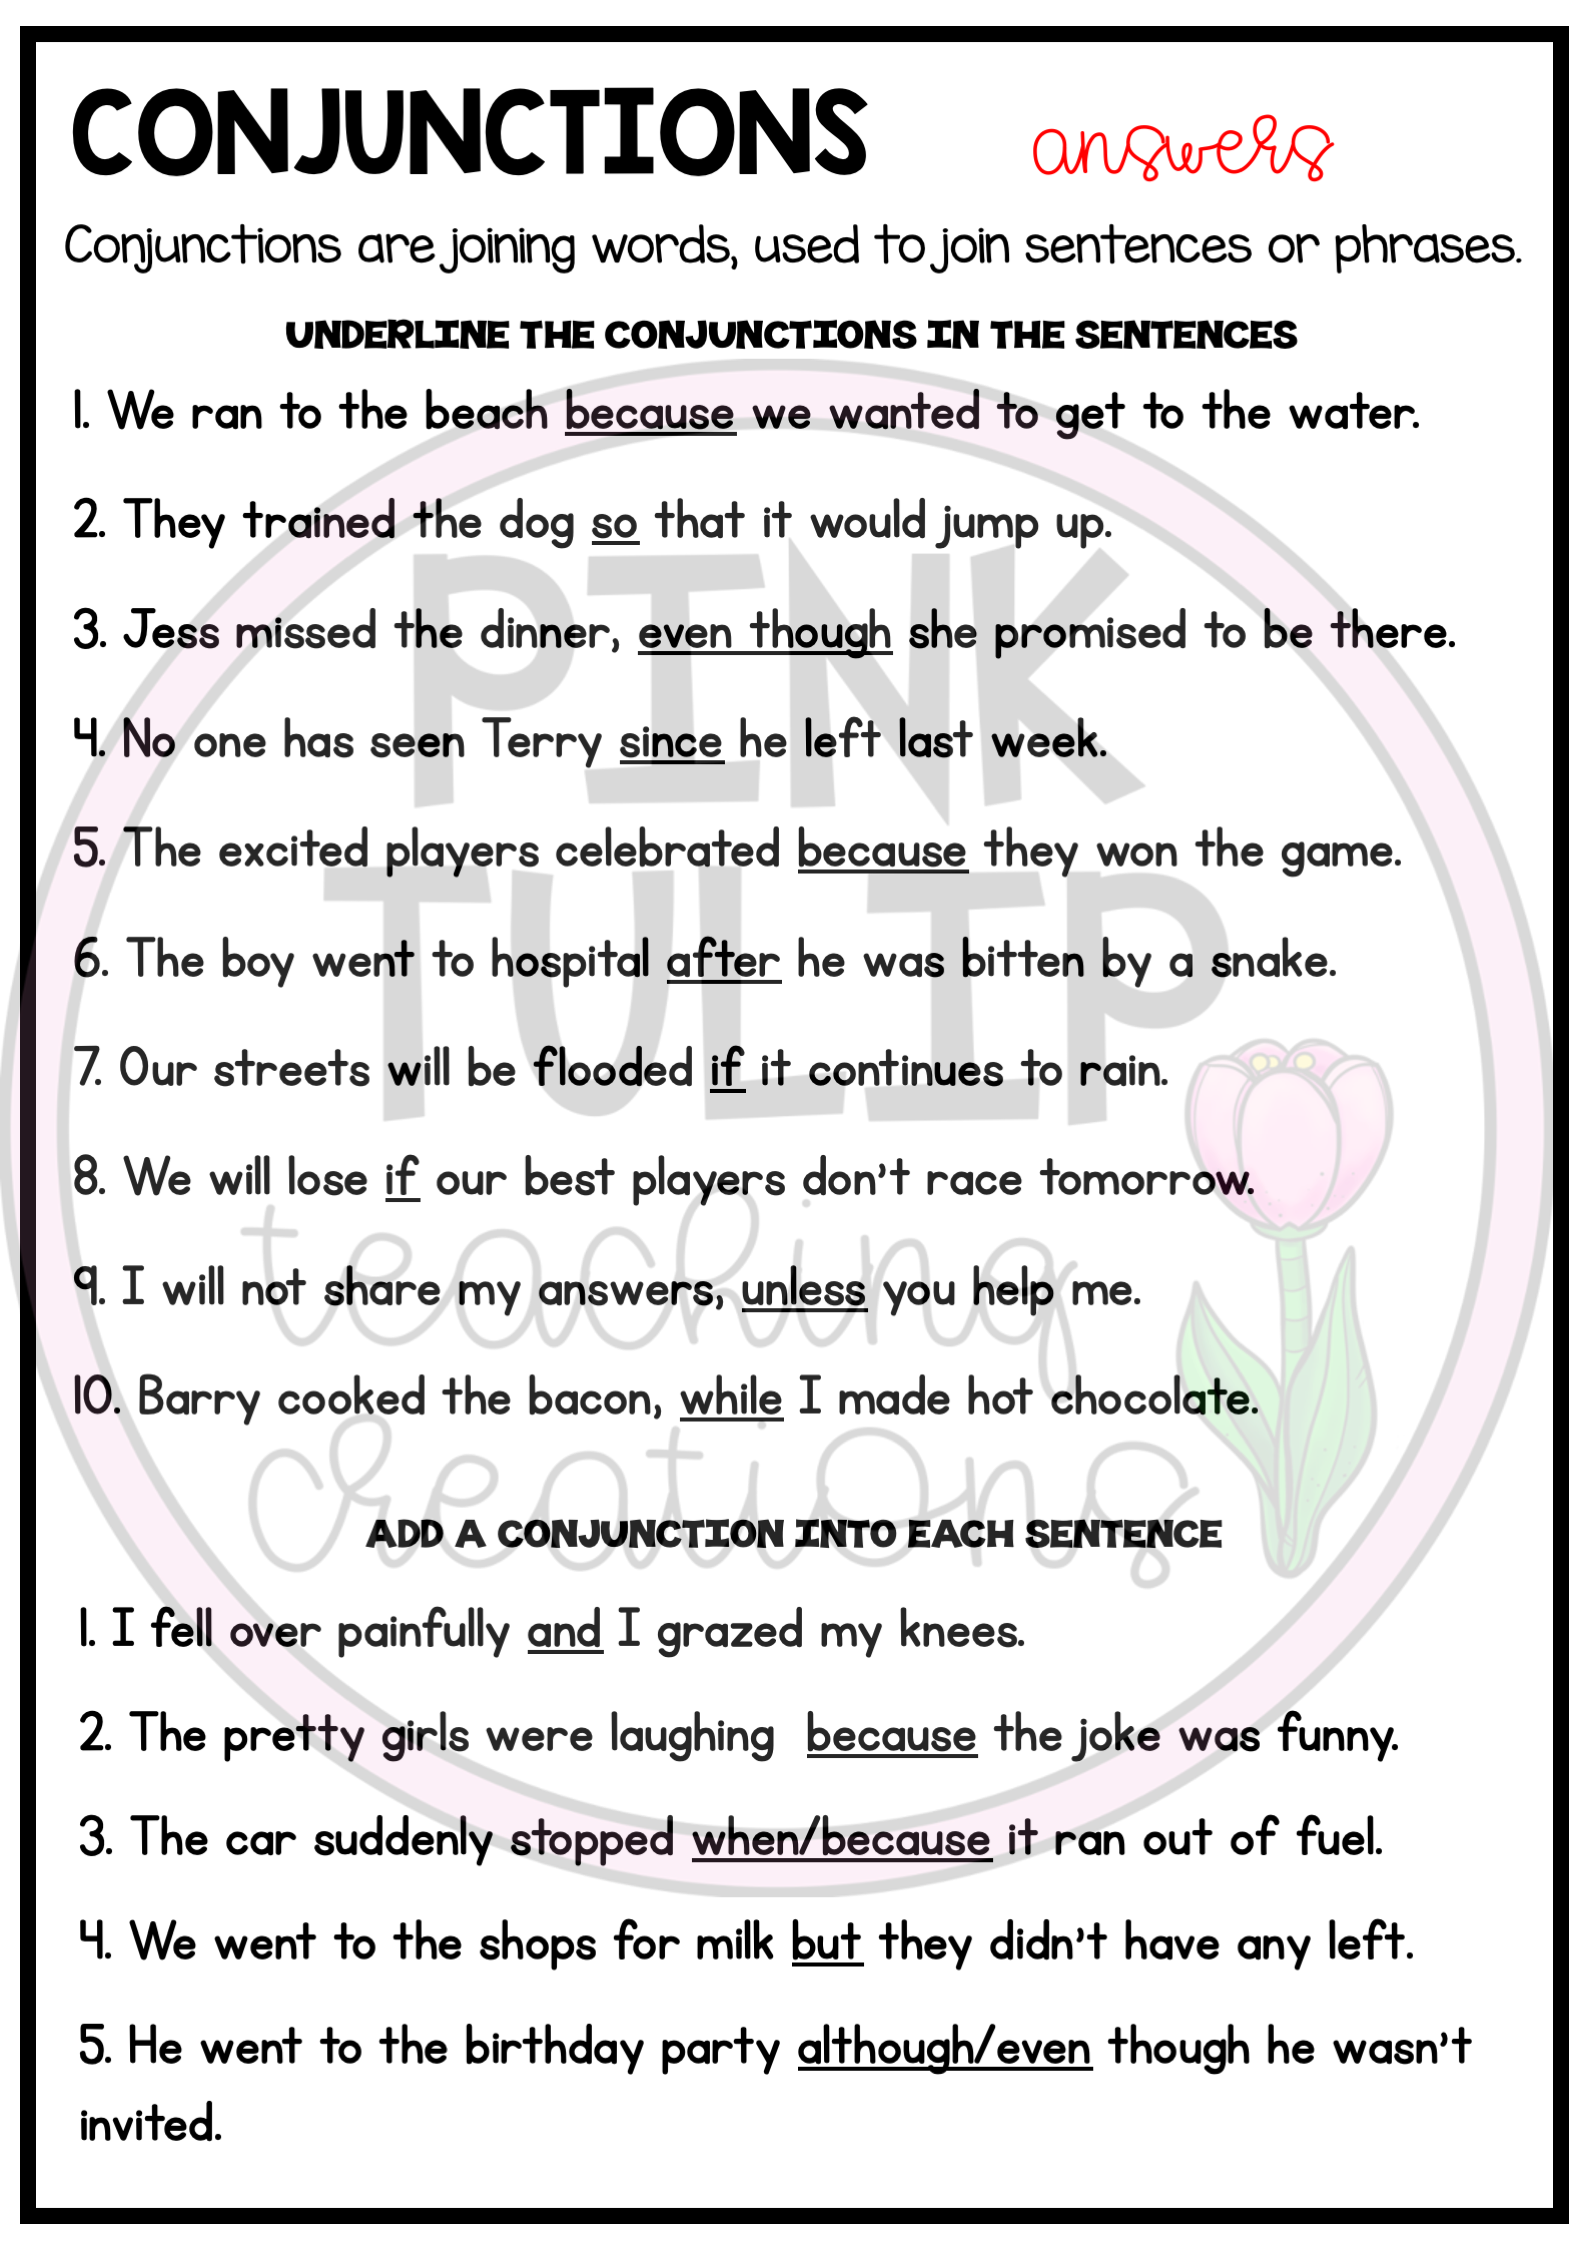 Understanding Conjunctions Worksheets